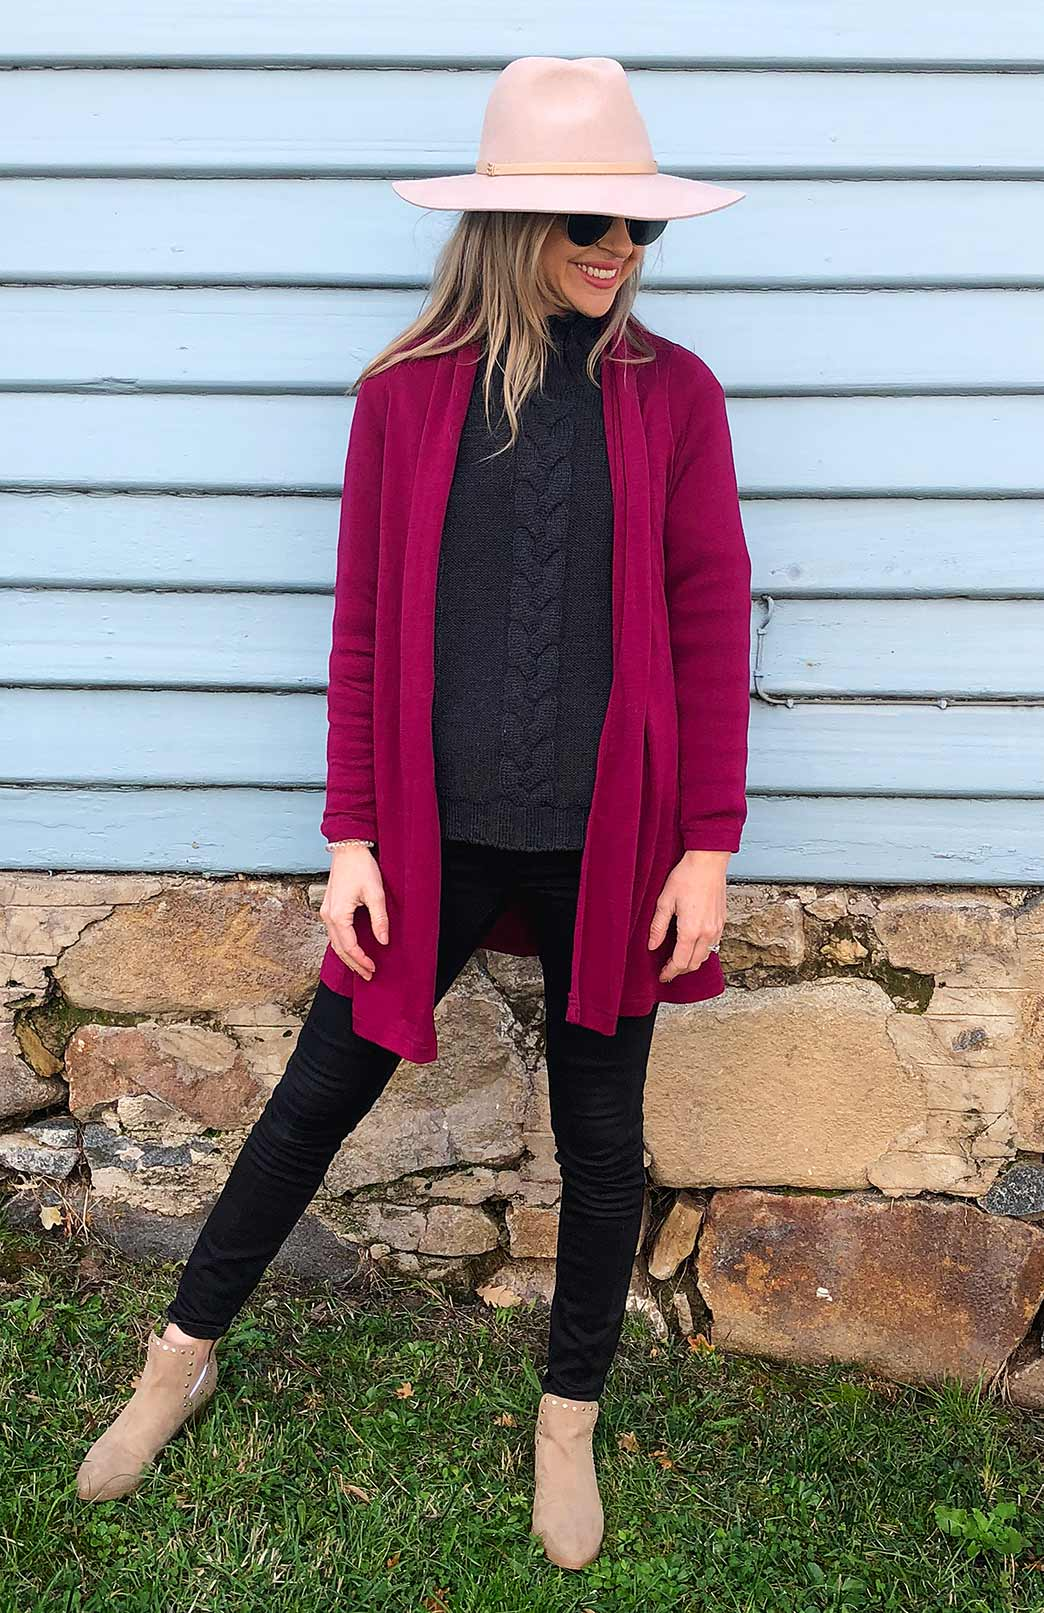 Our Model wearing Drape Cardigan in Magenta